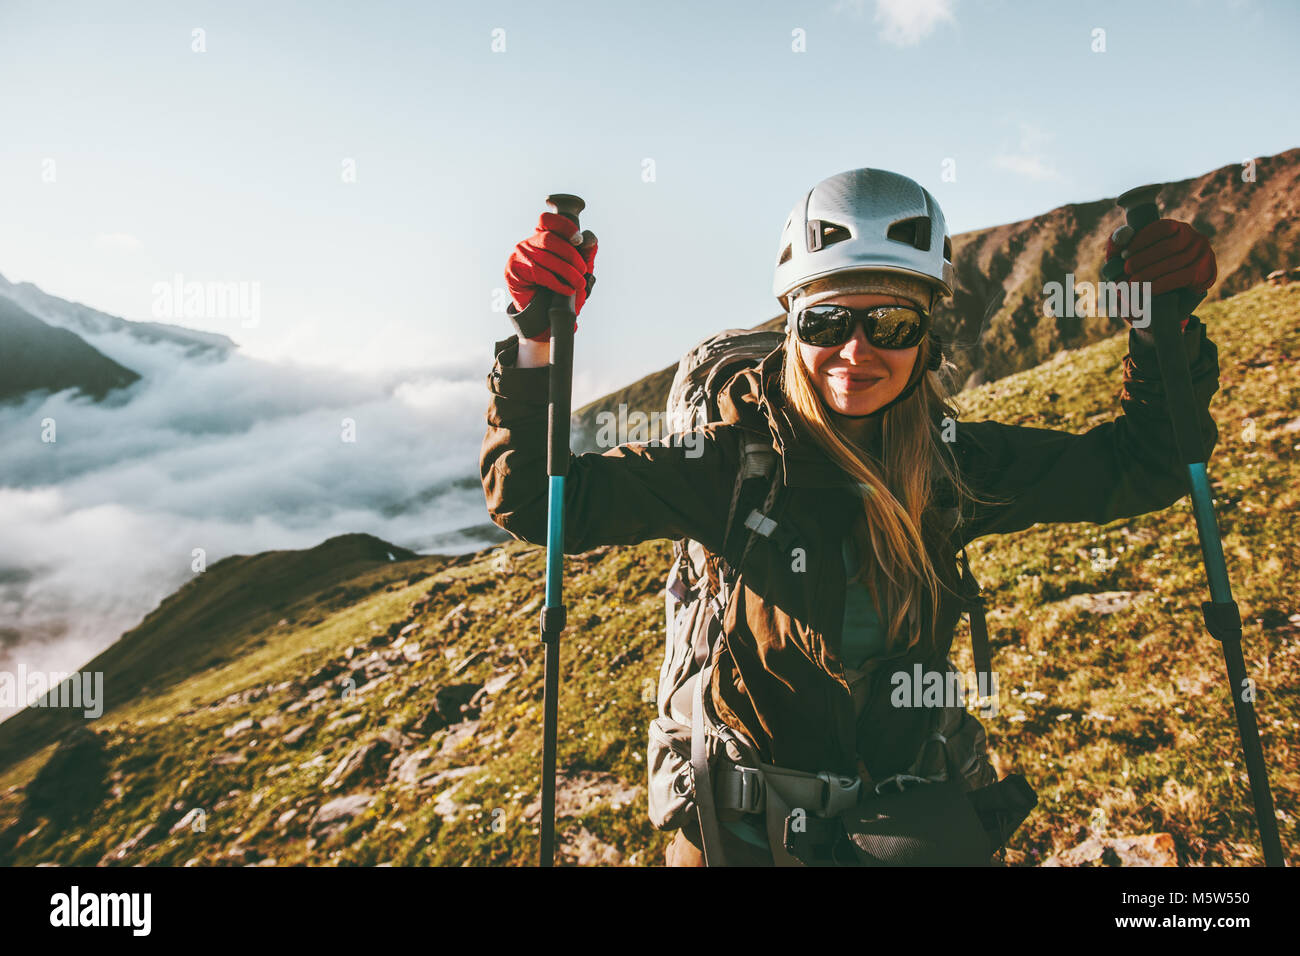 Woman hiking in mountains Travel healthy lifestyle adventure concept active summer vacations outdoor positive emotions - Stock Image